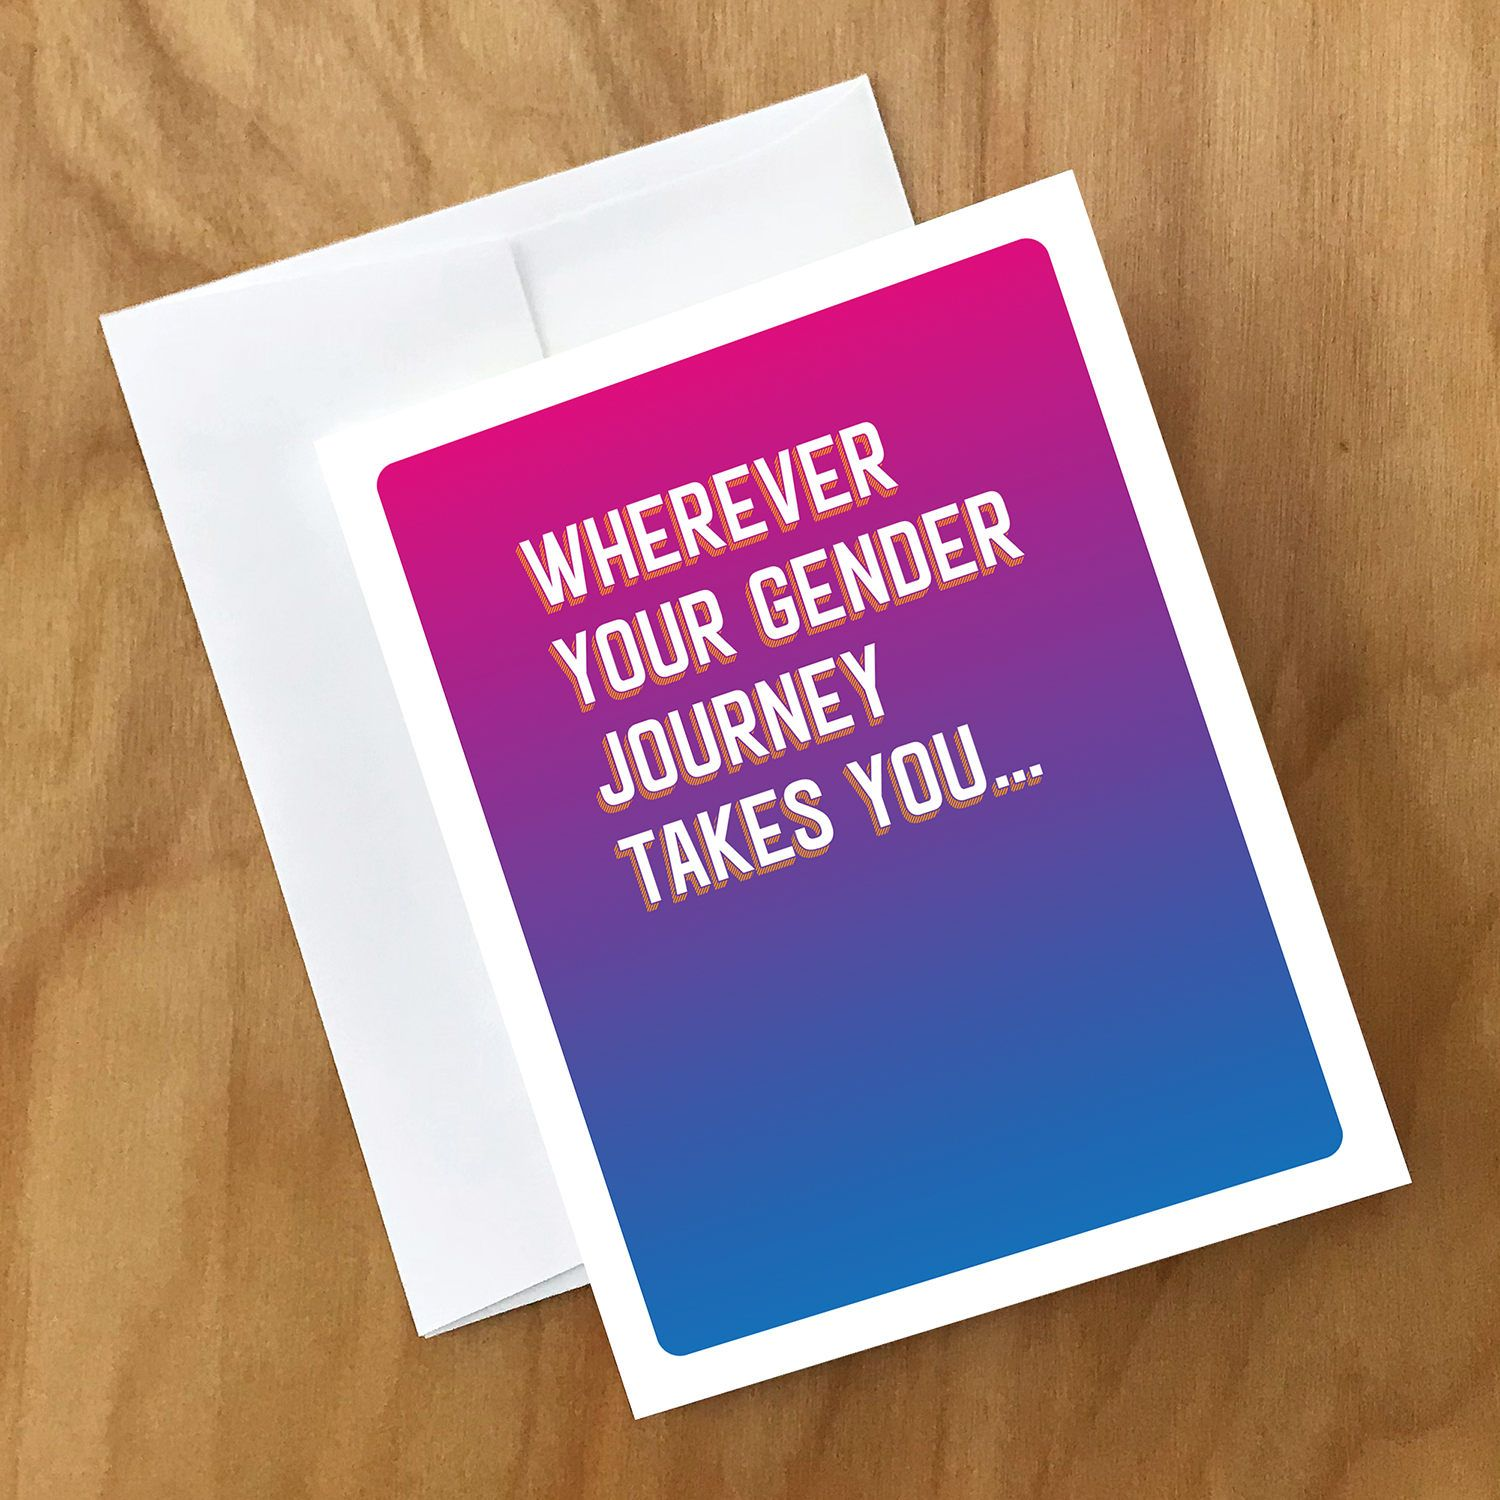 Excited To Share The Latest Addition To My Etsy Shop Encouragement Card For Gender Journey Or Transition Http Etsy Me 2fyn Encouragement Cards Cards Gender